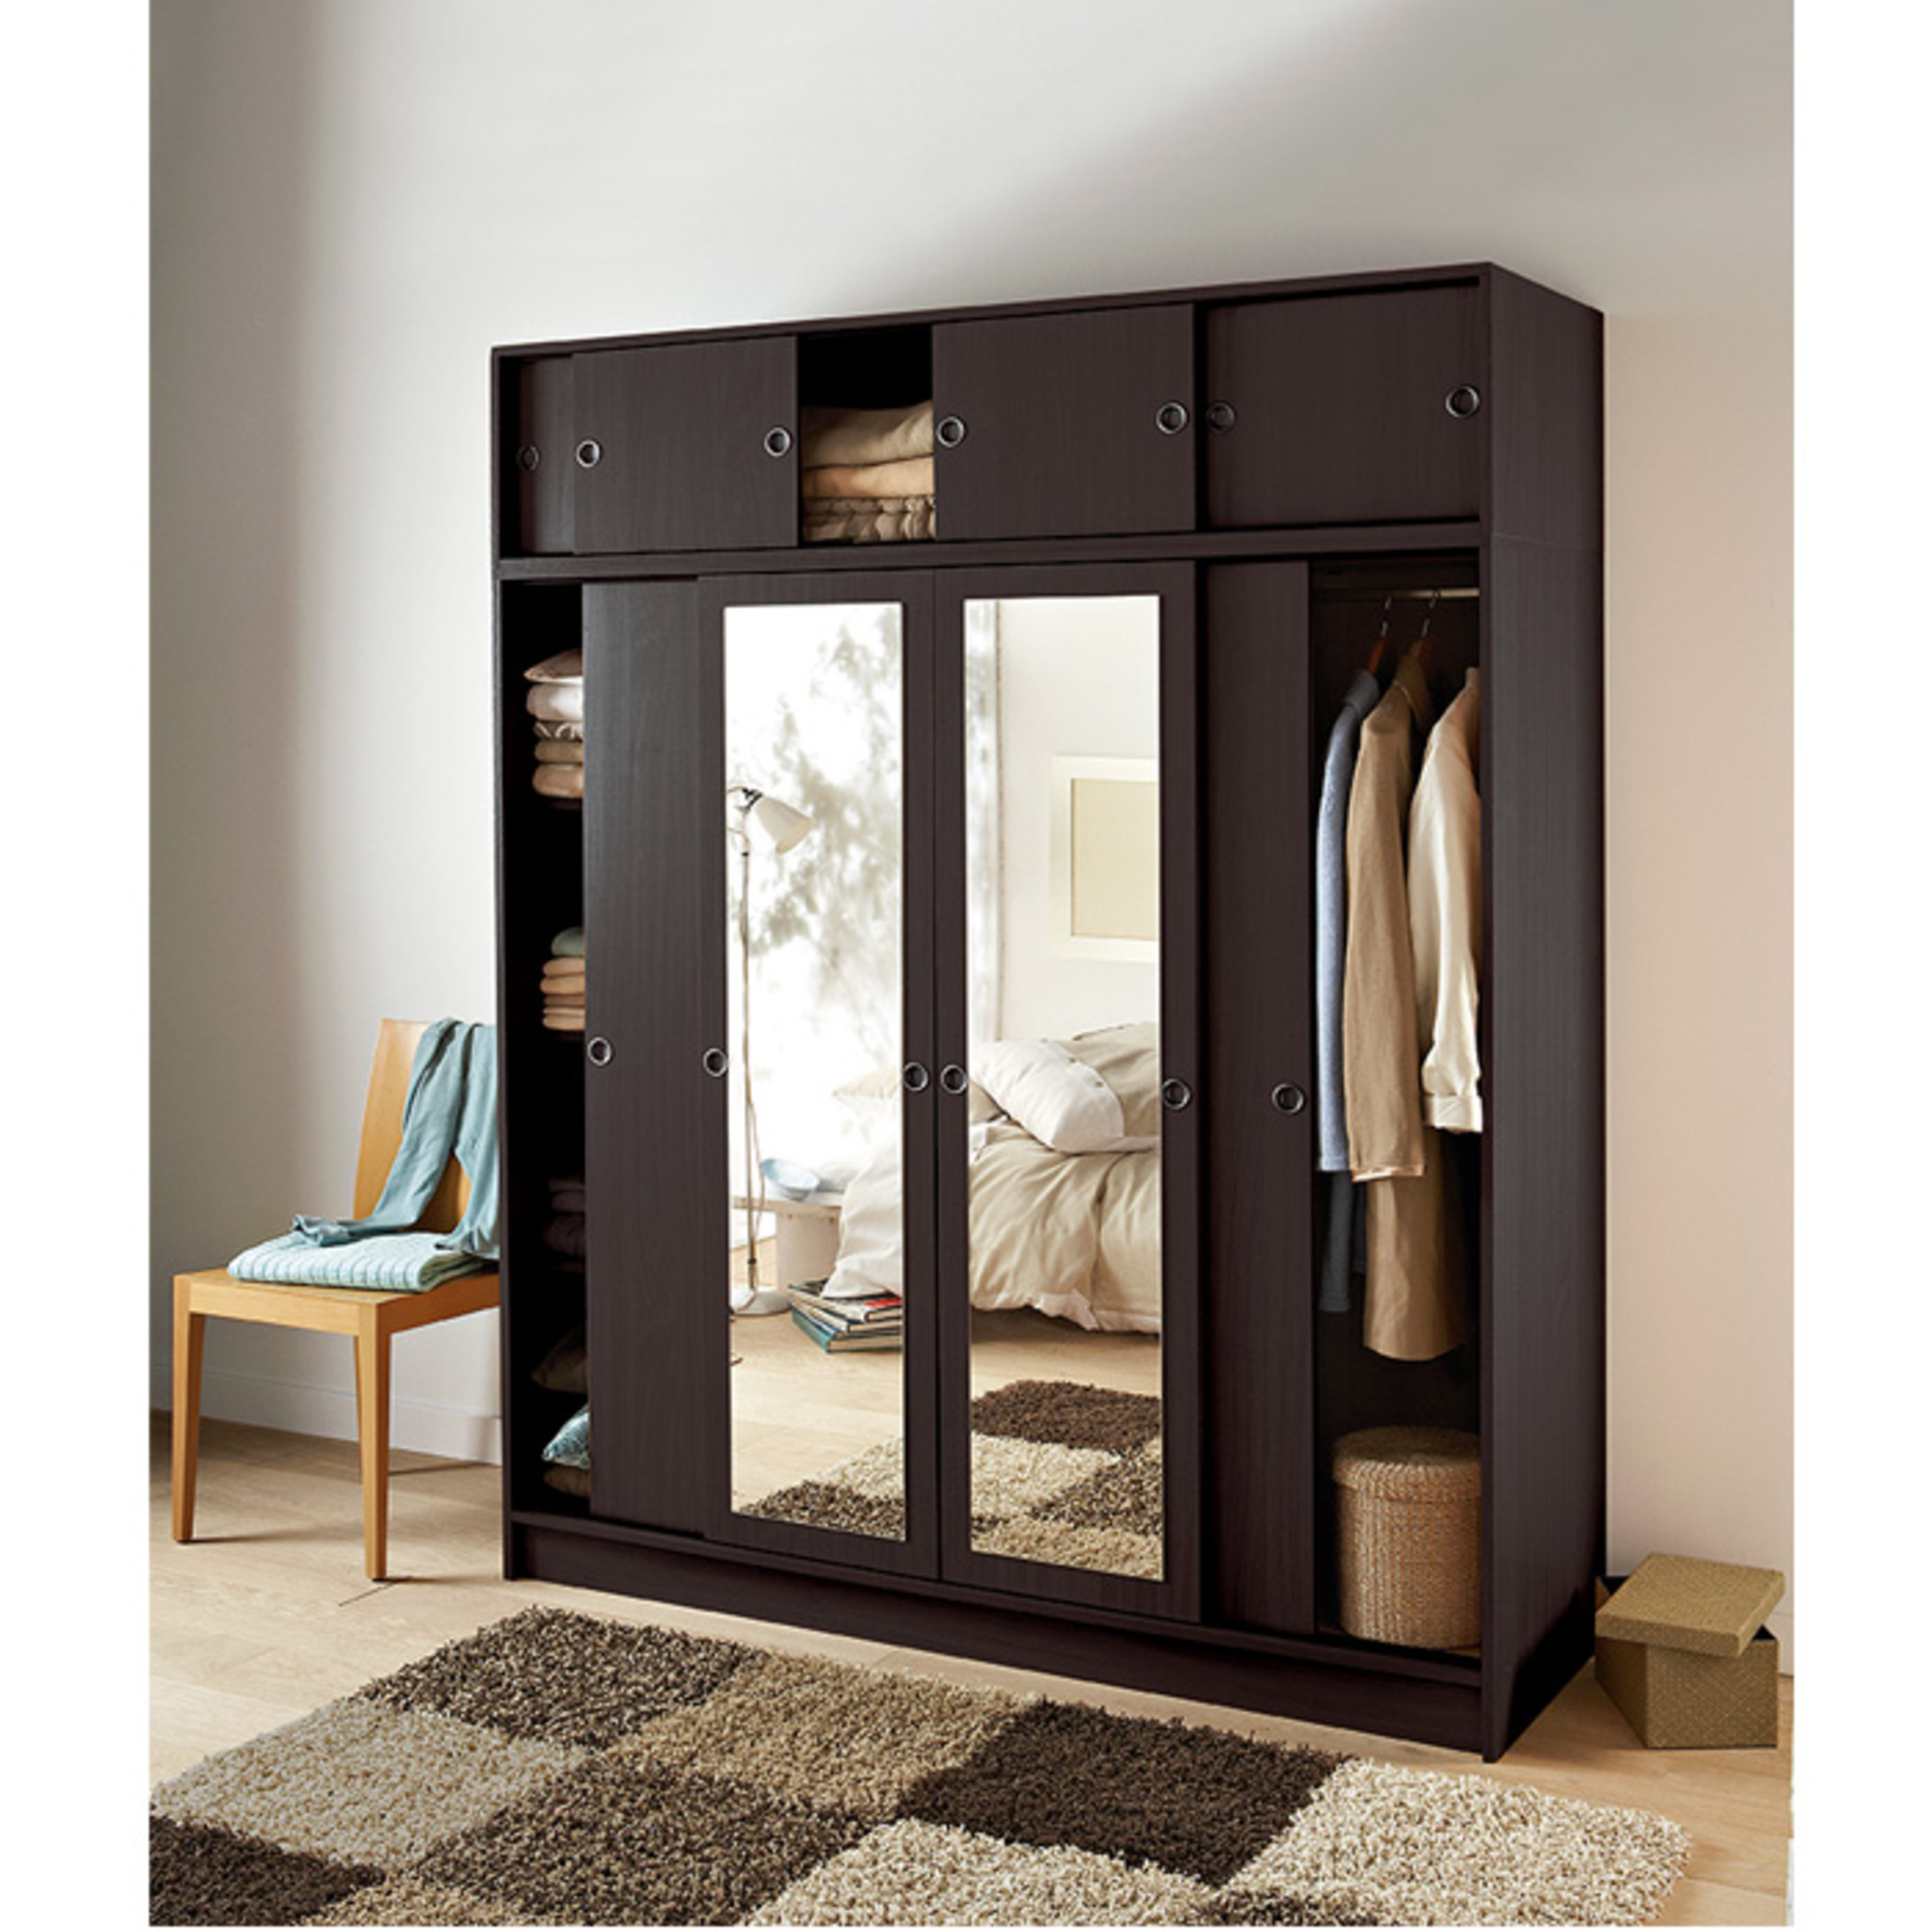 meuble porte coulissante ikea amazing armoires de cuisine. Black Bedroom Furniture Sets. Home Design Ideas